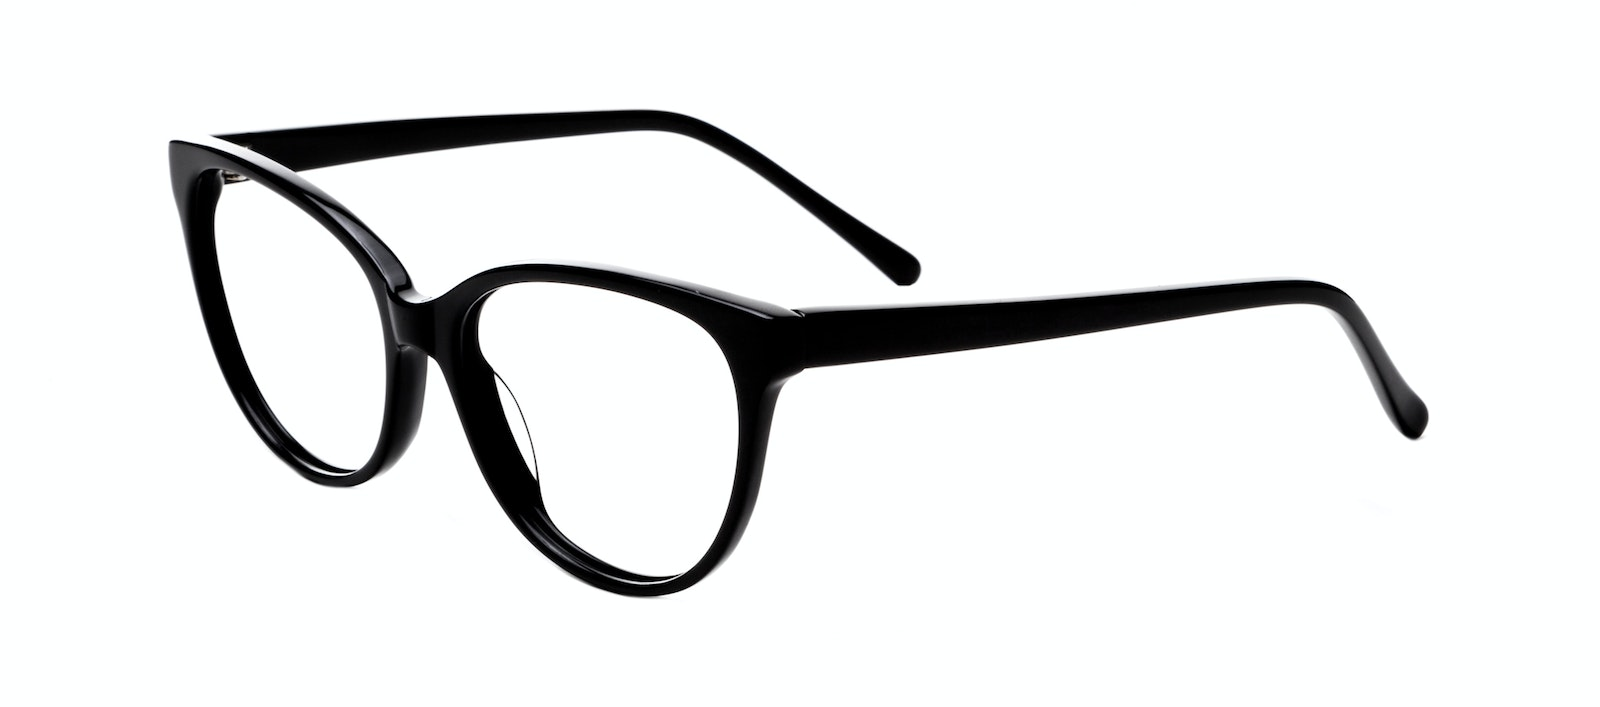 Affordable Fashion Glasses Cat Eye Eyeglasses Women Imagine Onyx Tilt